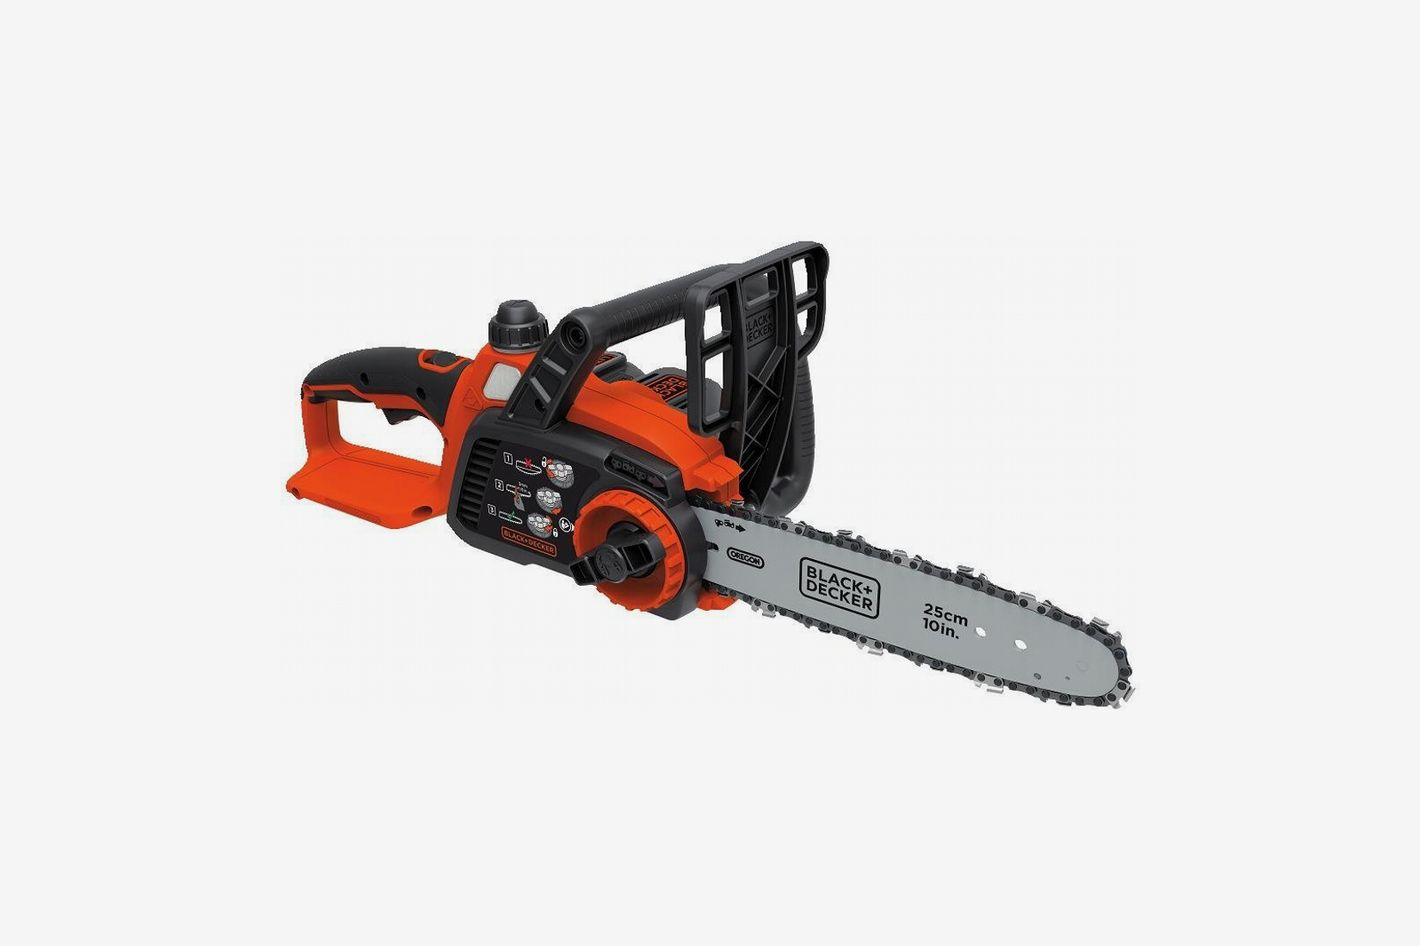 Black & Decker LCS1020 20V Max Lithium Ion 10-Inch Chainsaw